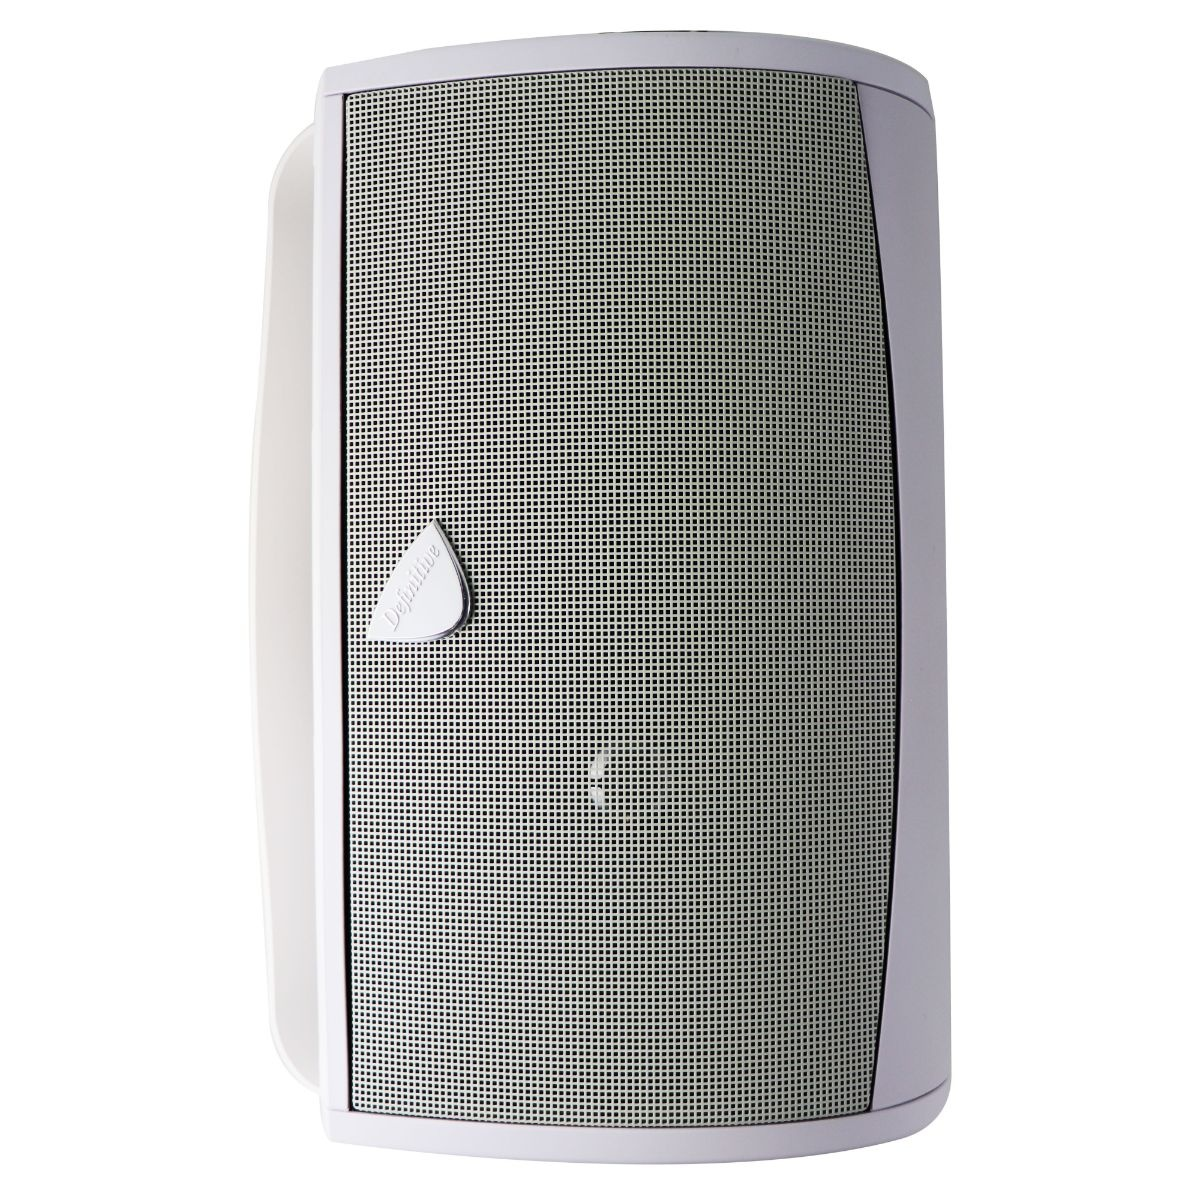 Definitive Technology Outdoor All - Weather Single Speaker (AW5500) - White